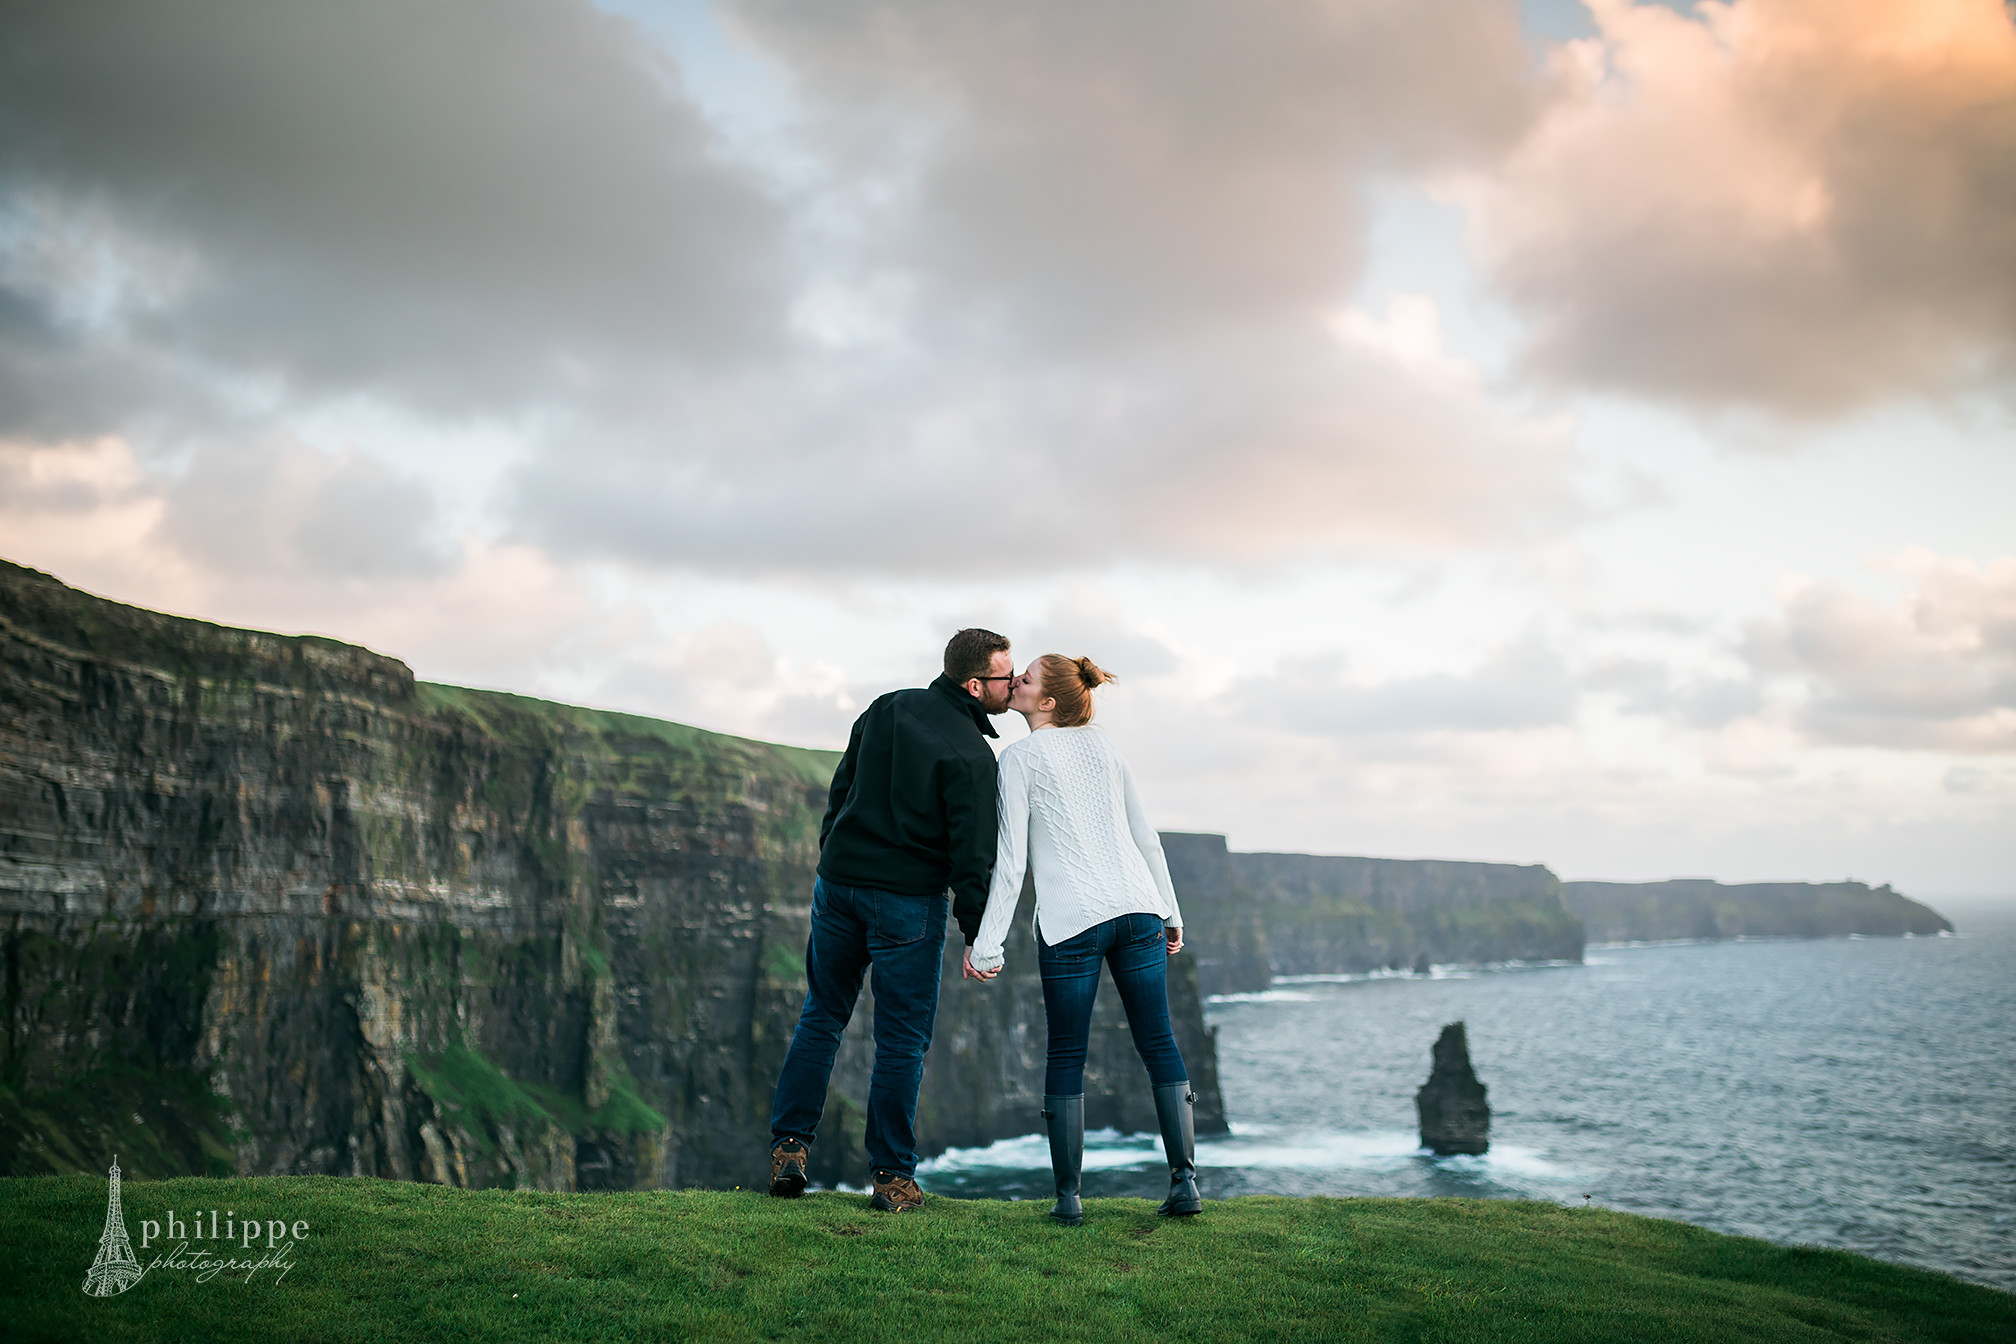 philippe-photography-wedding-clare-ireland-engagement-SarahBen5